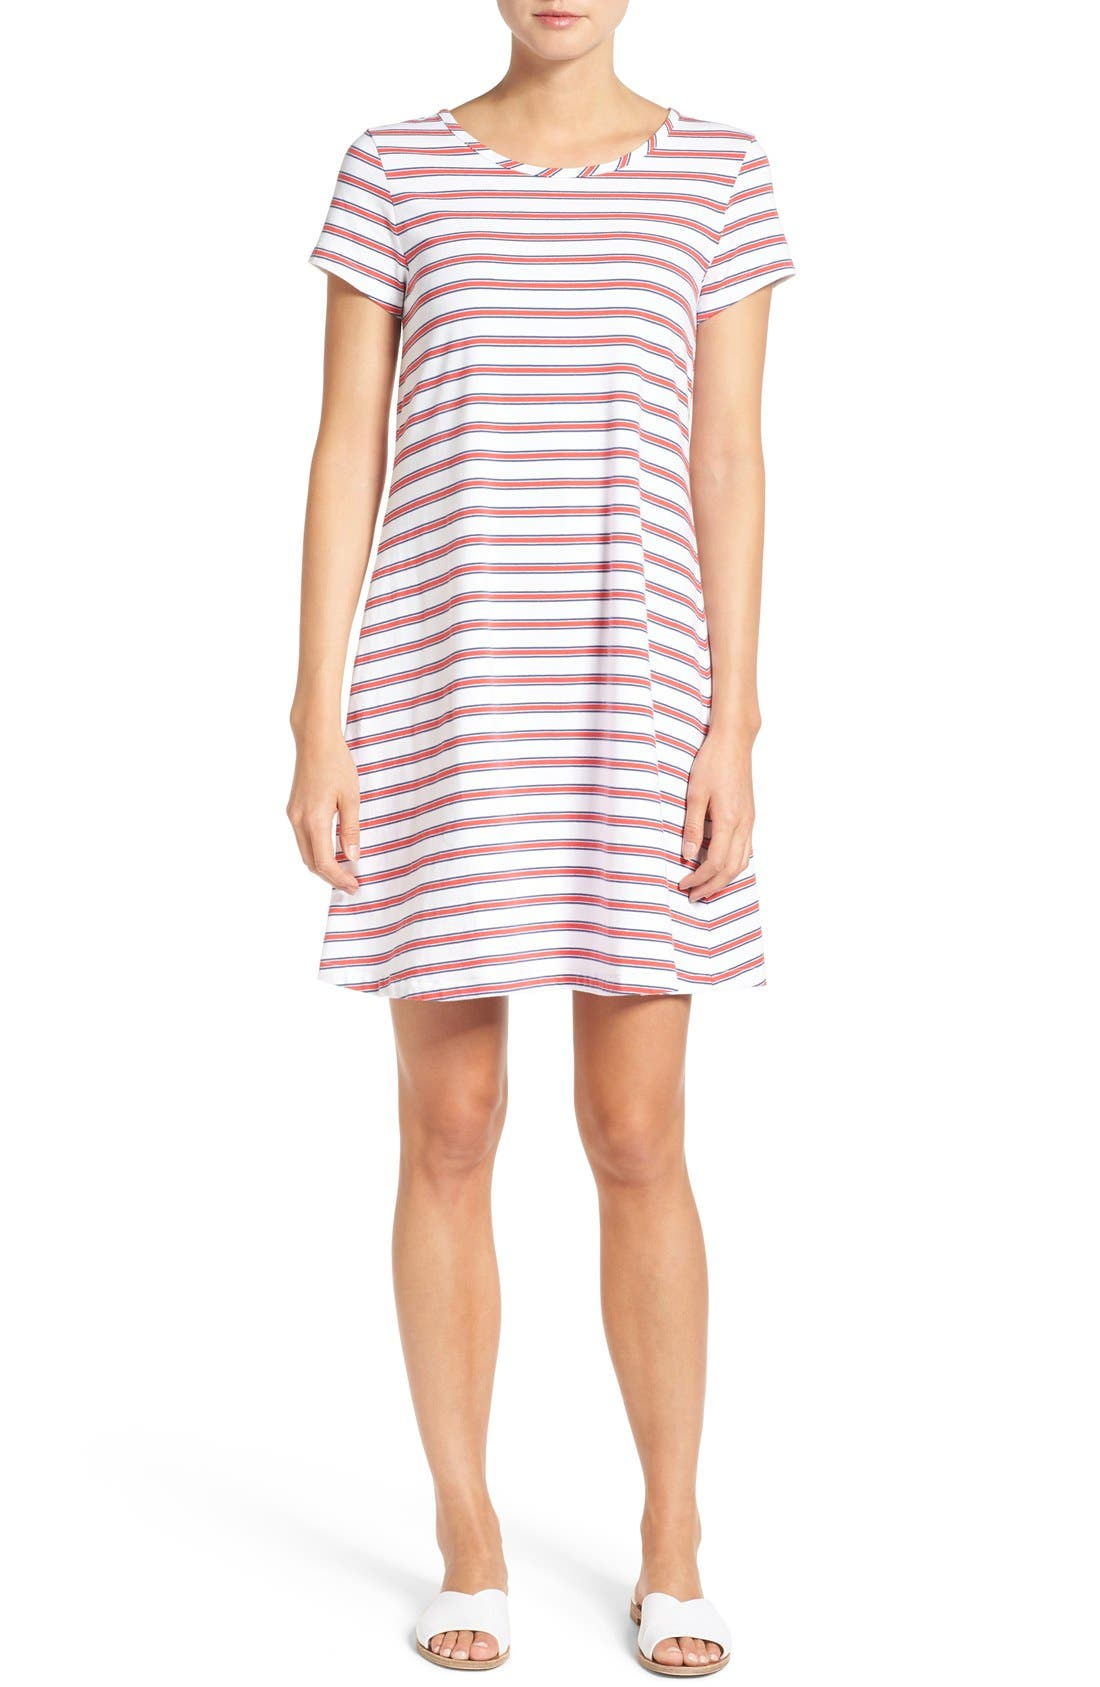 Alternate Image 1 Selected - Vineyard Vines Stripe Knit Stretch Cotton Shirtdress